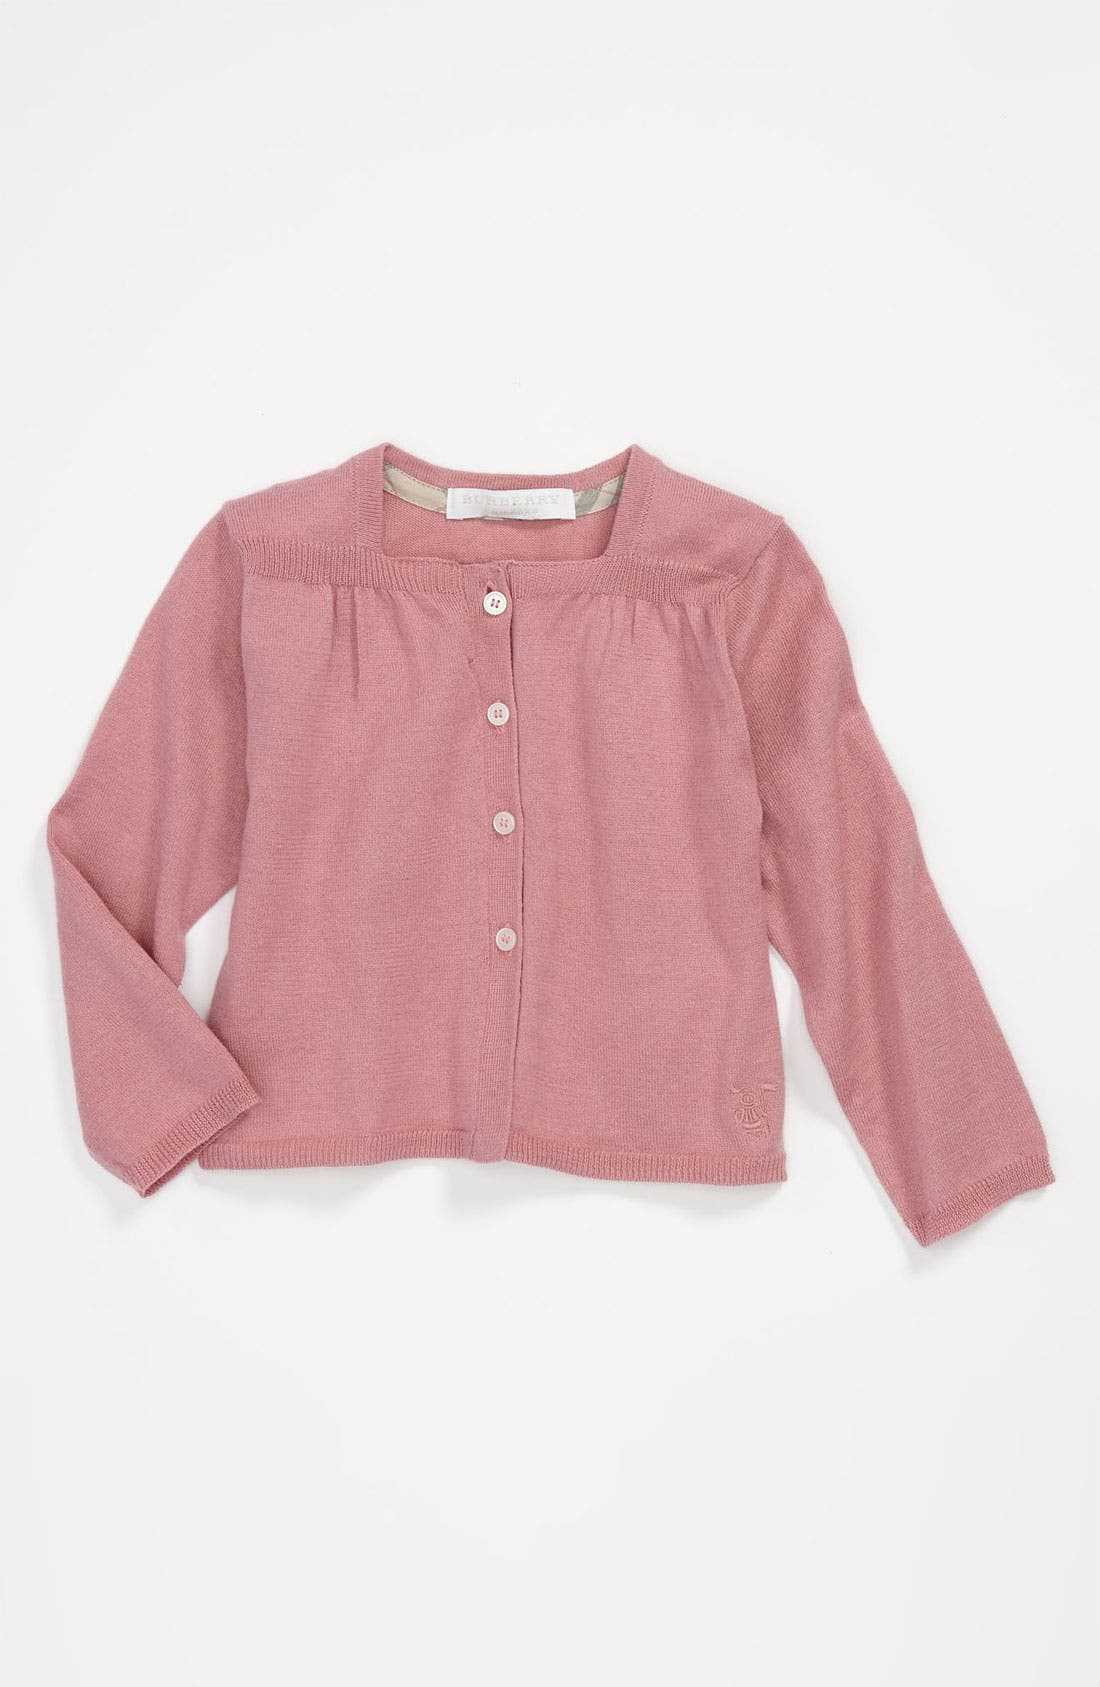 Main Image - Burberry 'Fleur' Knit Cardigan (Baby)